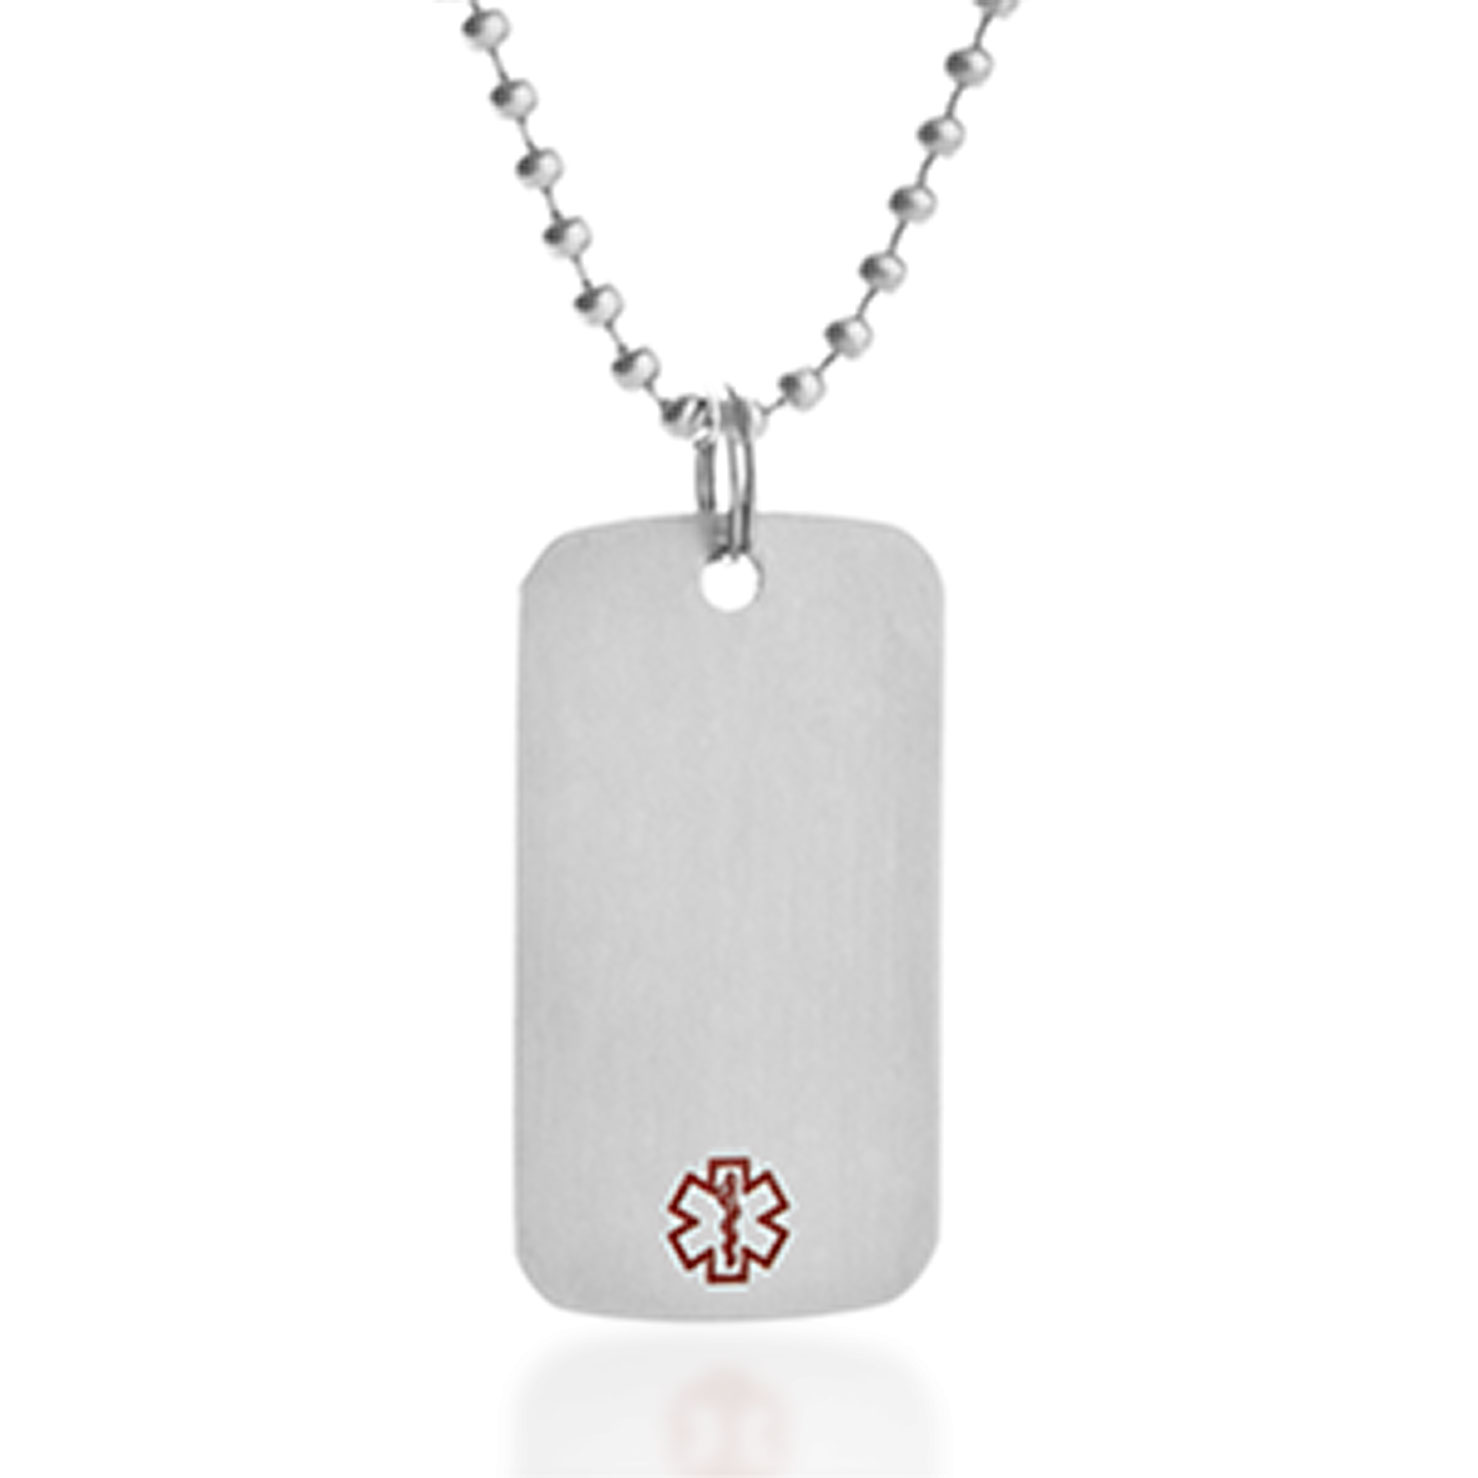 Child id necklace kids id necklace aa3317c medium brushed steel medical dog tag mozeypictures